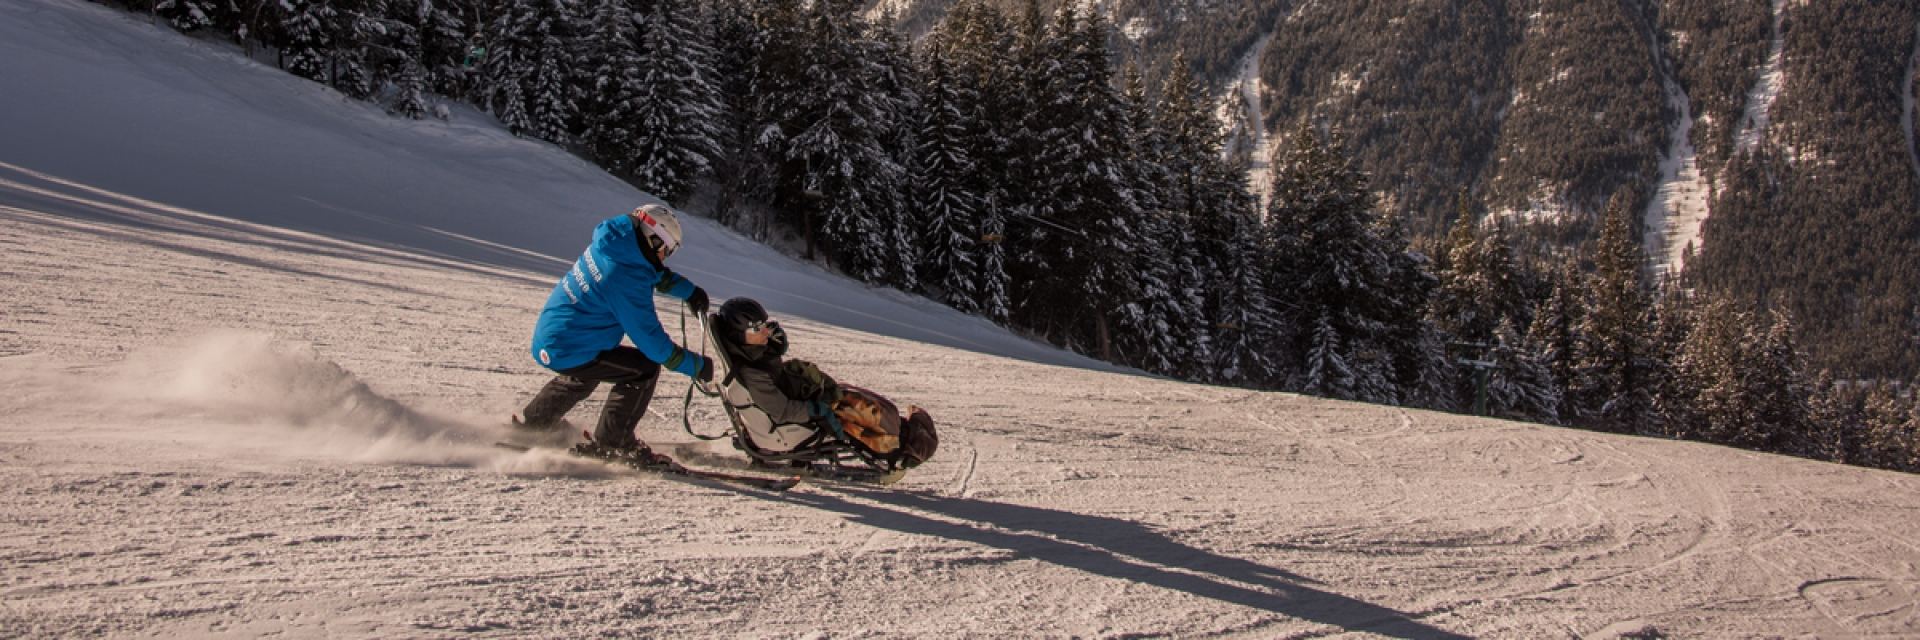 A person pushing another in an accessible skiing wheelchair